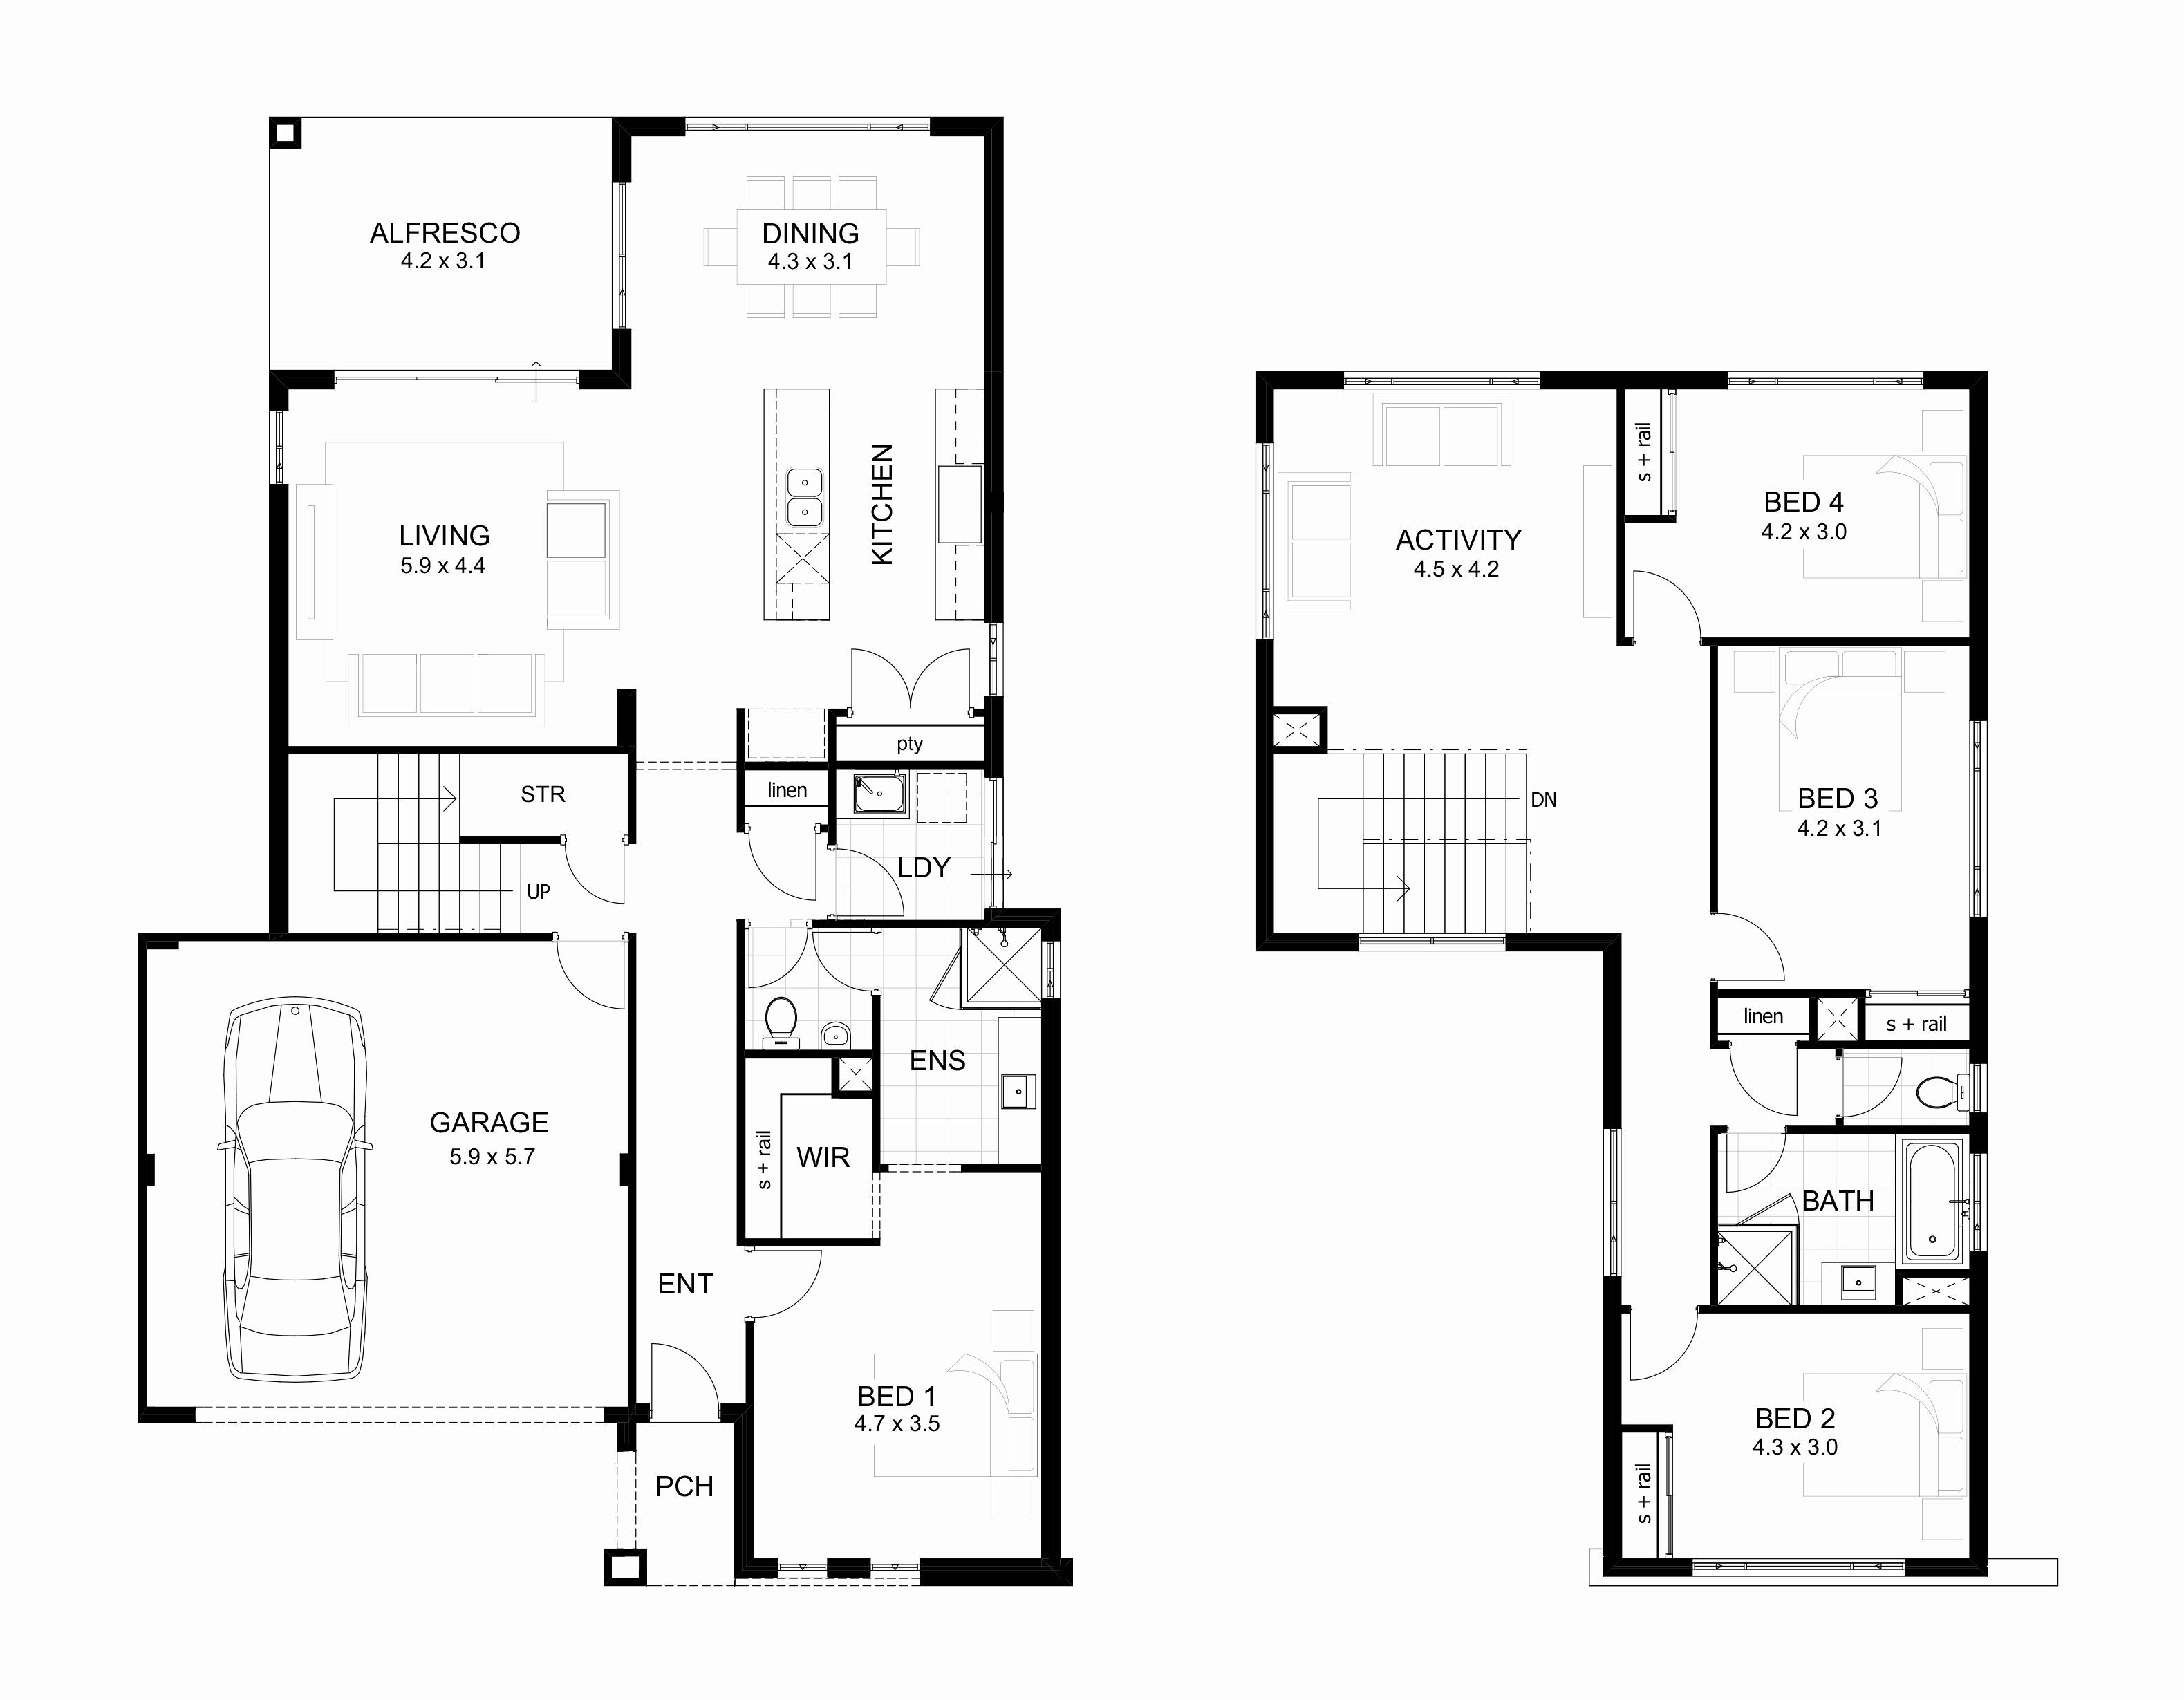 30 X 50 Two Story House Plans Awesome Fresh 40 60 Floor Beauteous Bedroom House Plans Affordable Interior Design Floor Plans